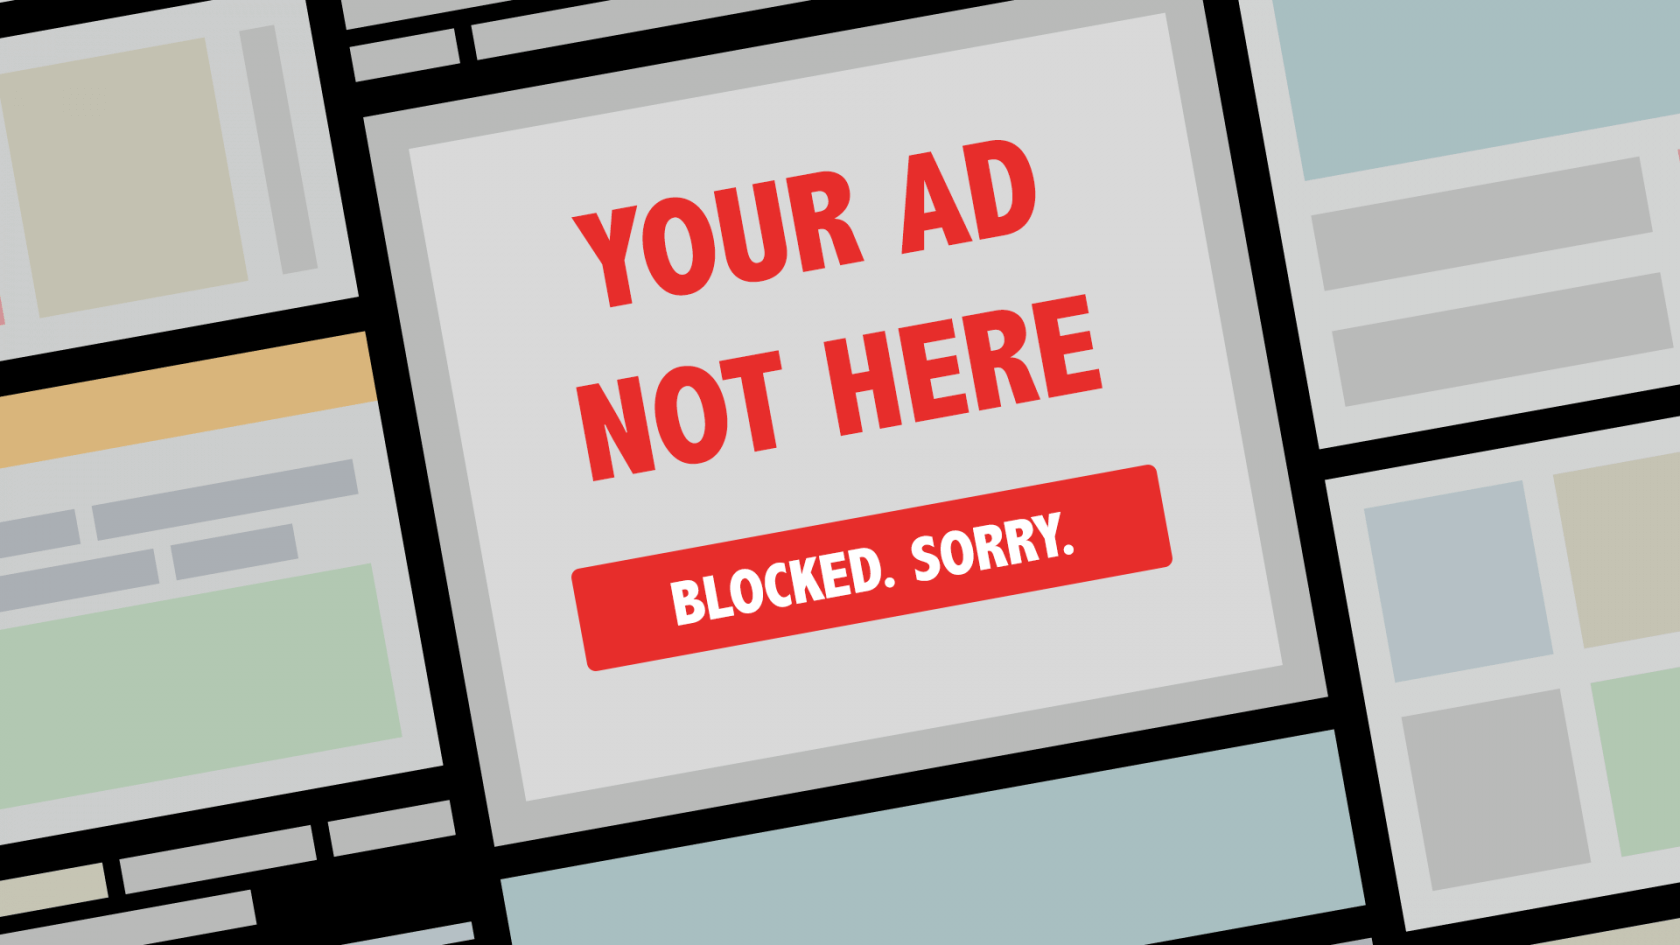 Brave rejects Google's anti ad-blocking proposal, boosts built-in ad-blocker performance by '69x'